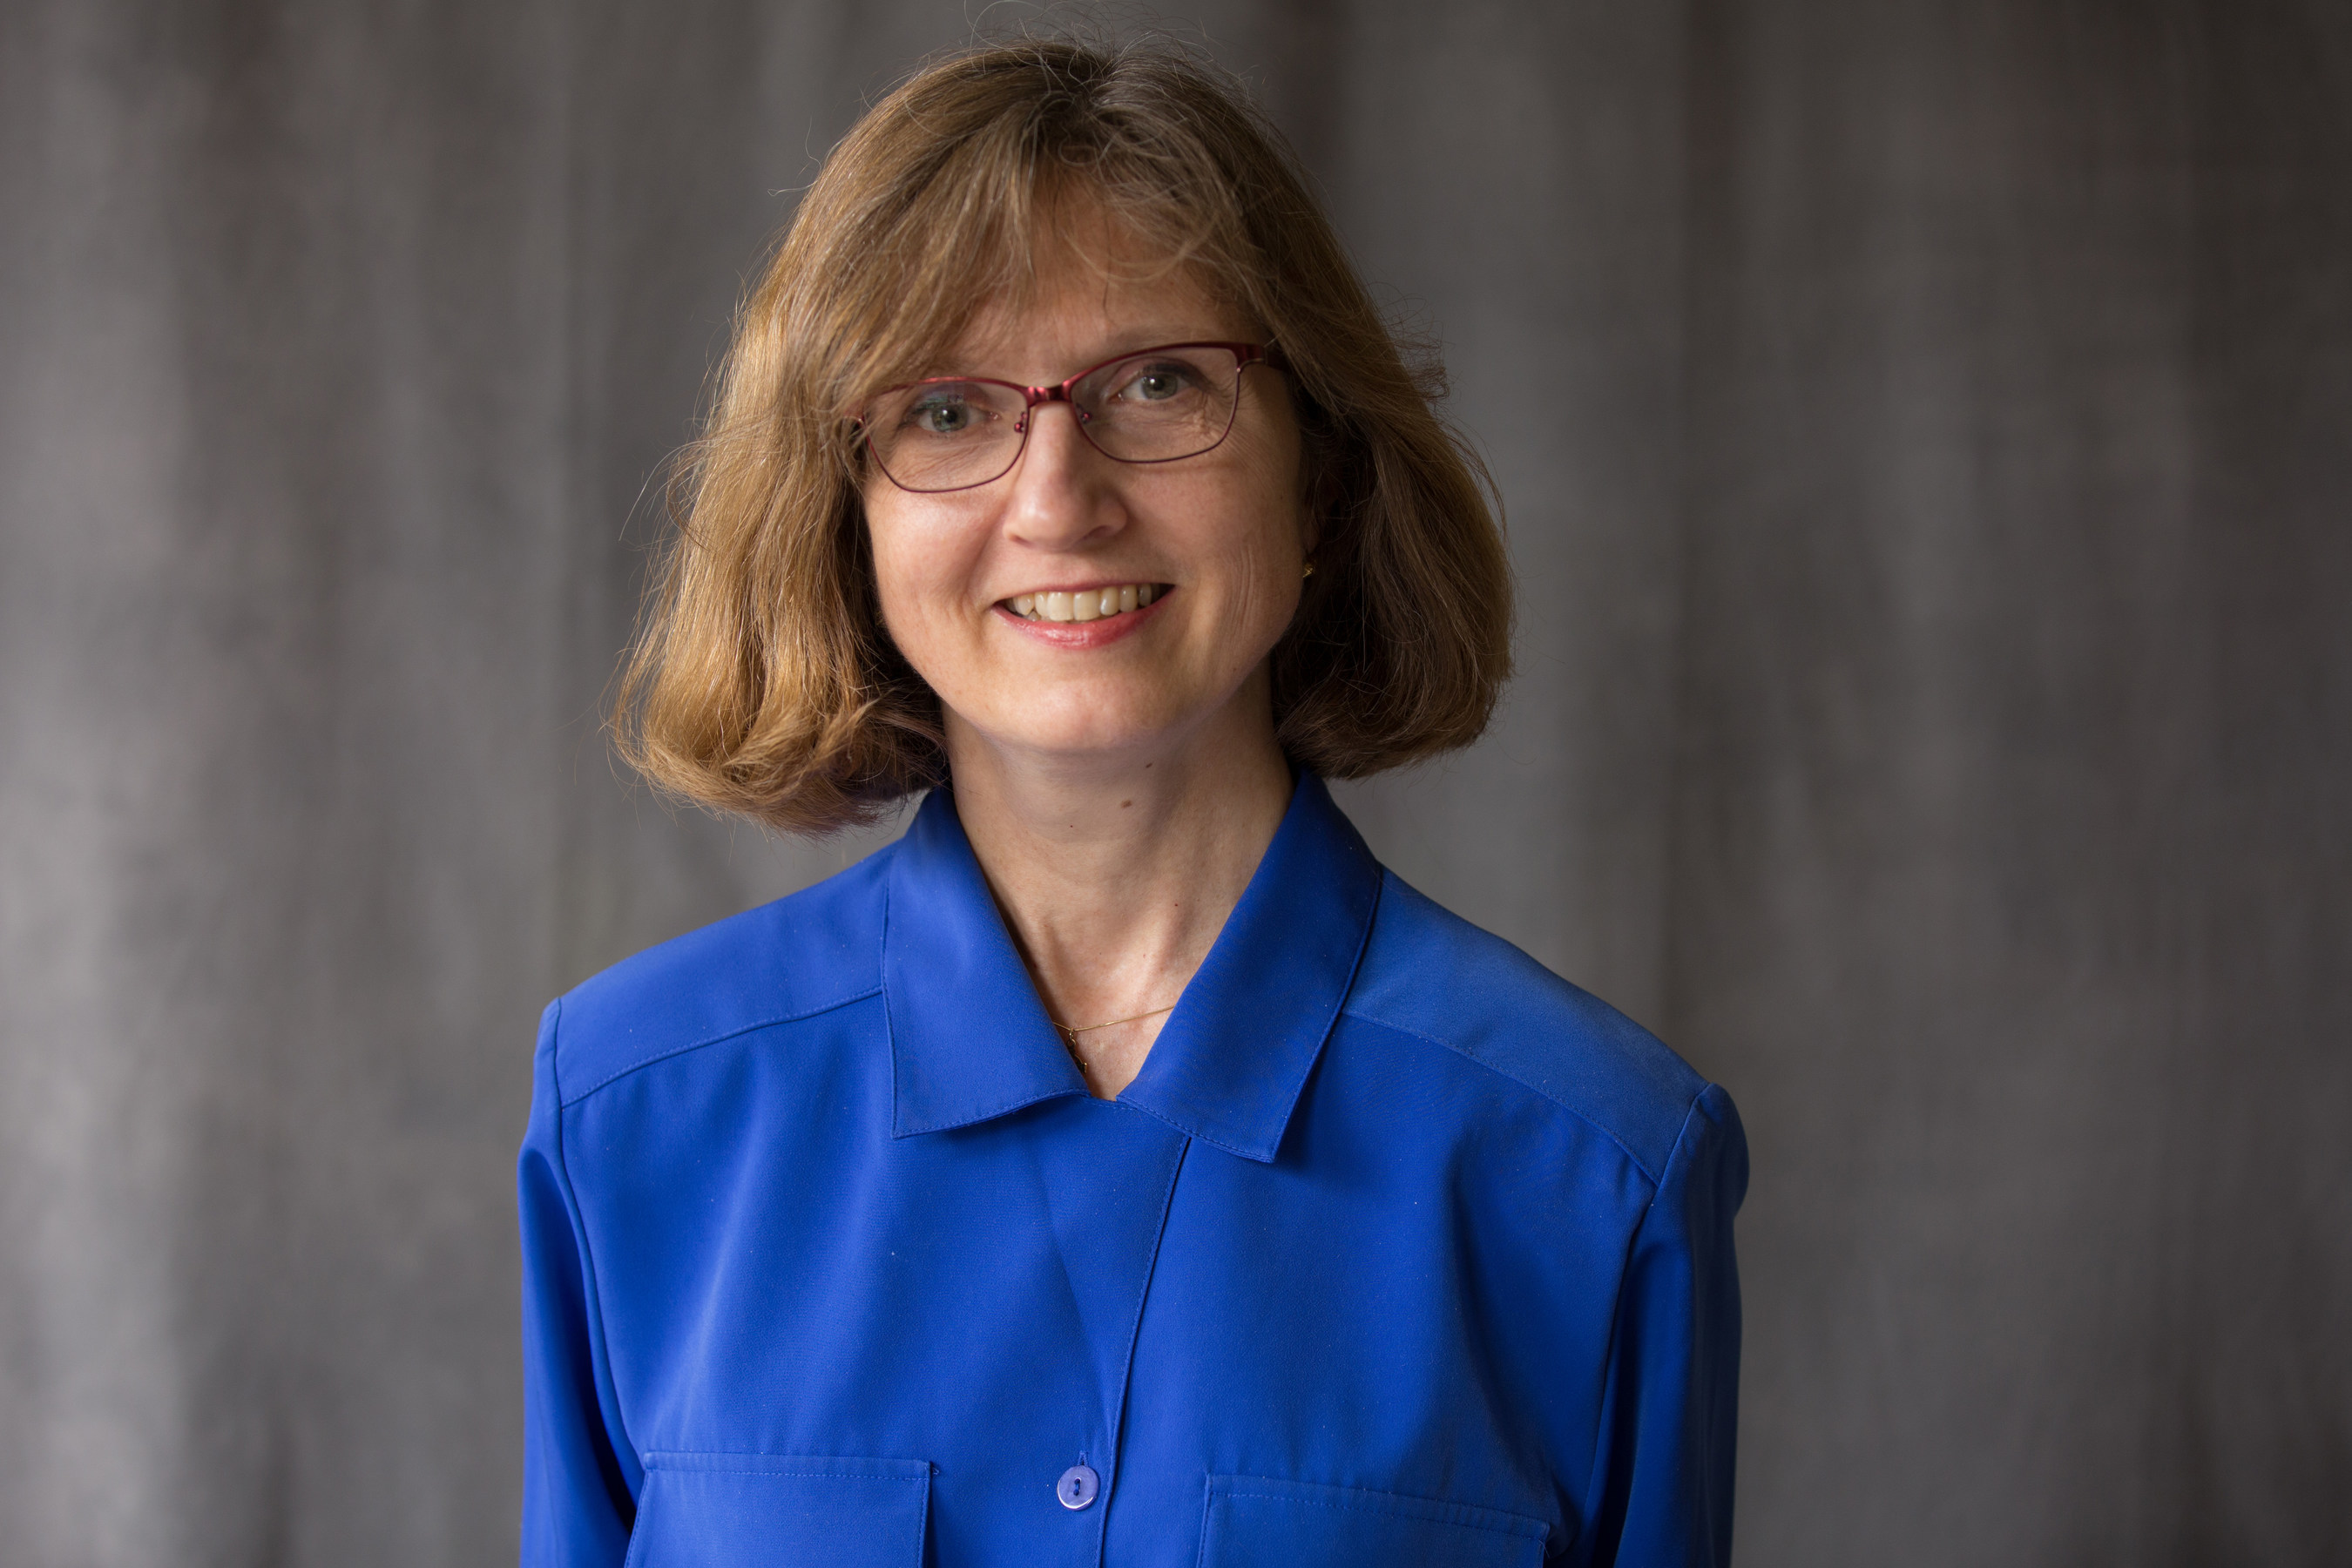 Susan Holman has received the 2016 Grawemeyer Award in Religion. The University of Louisville and the Louisville Presbyterian Theological Seminary present the award annually. The university also gives Grawemeyer Awards each year for outstanding works in music composition, ideas improving world order, psychology and education. Photo by Camilla Finlay.